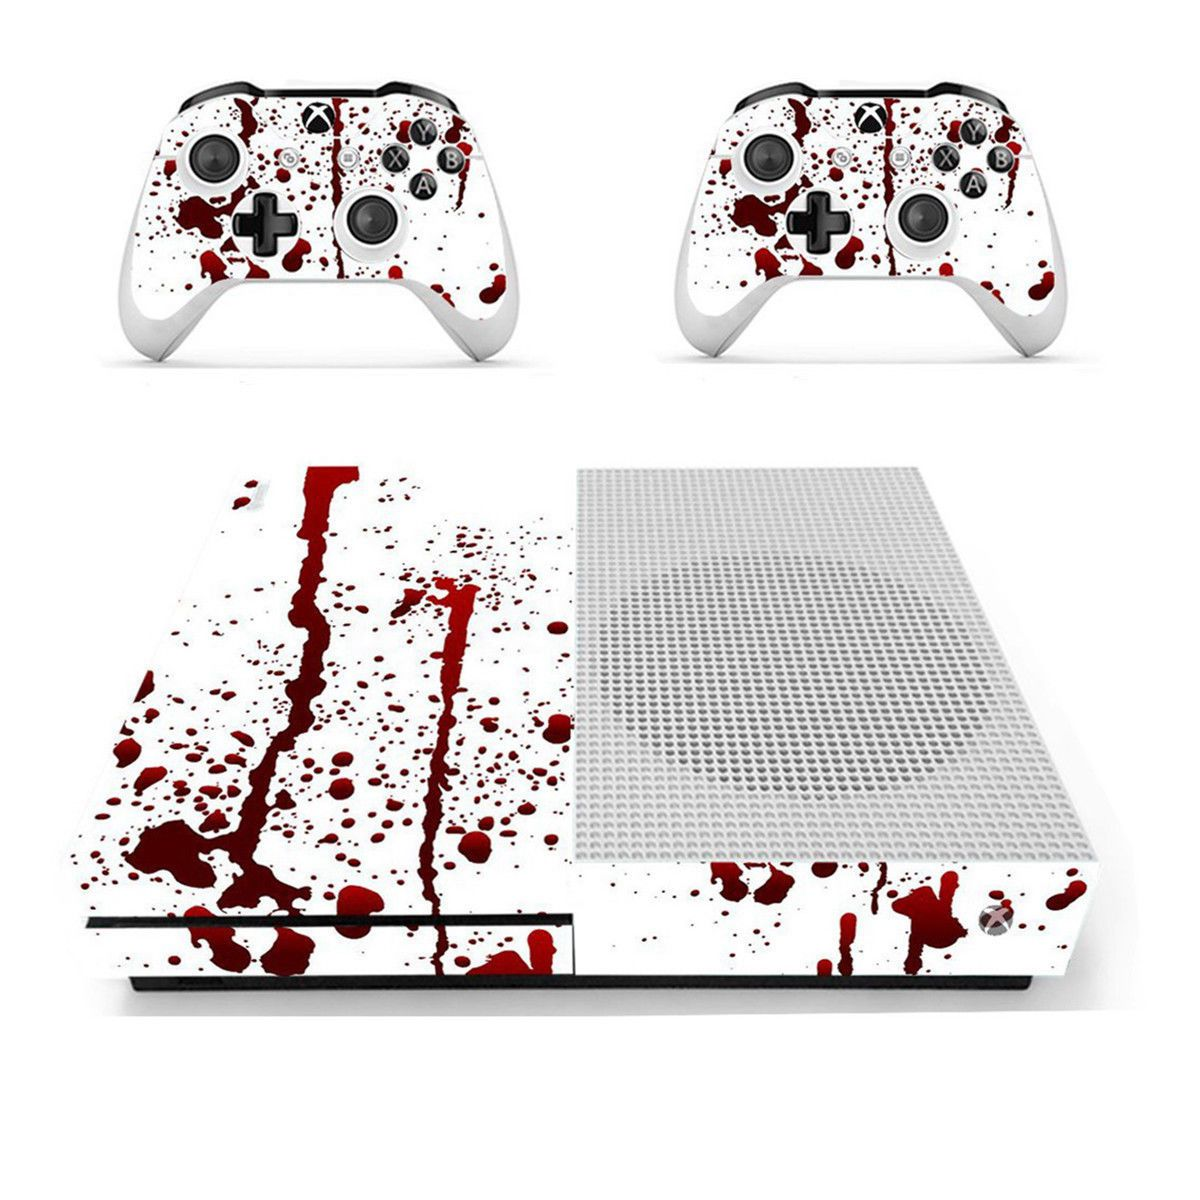 Hearty Liverpool Xbox One S Skin Sticker Console Decal Vinyl Xbox One Controller Video Game Accessories Faceplates, Decals & Stickers